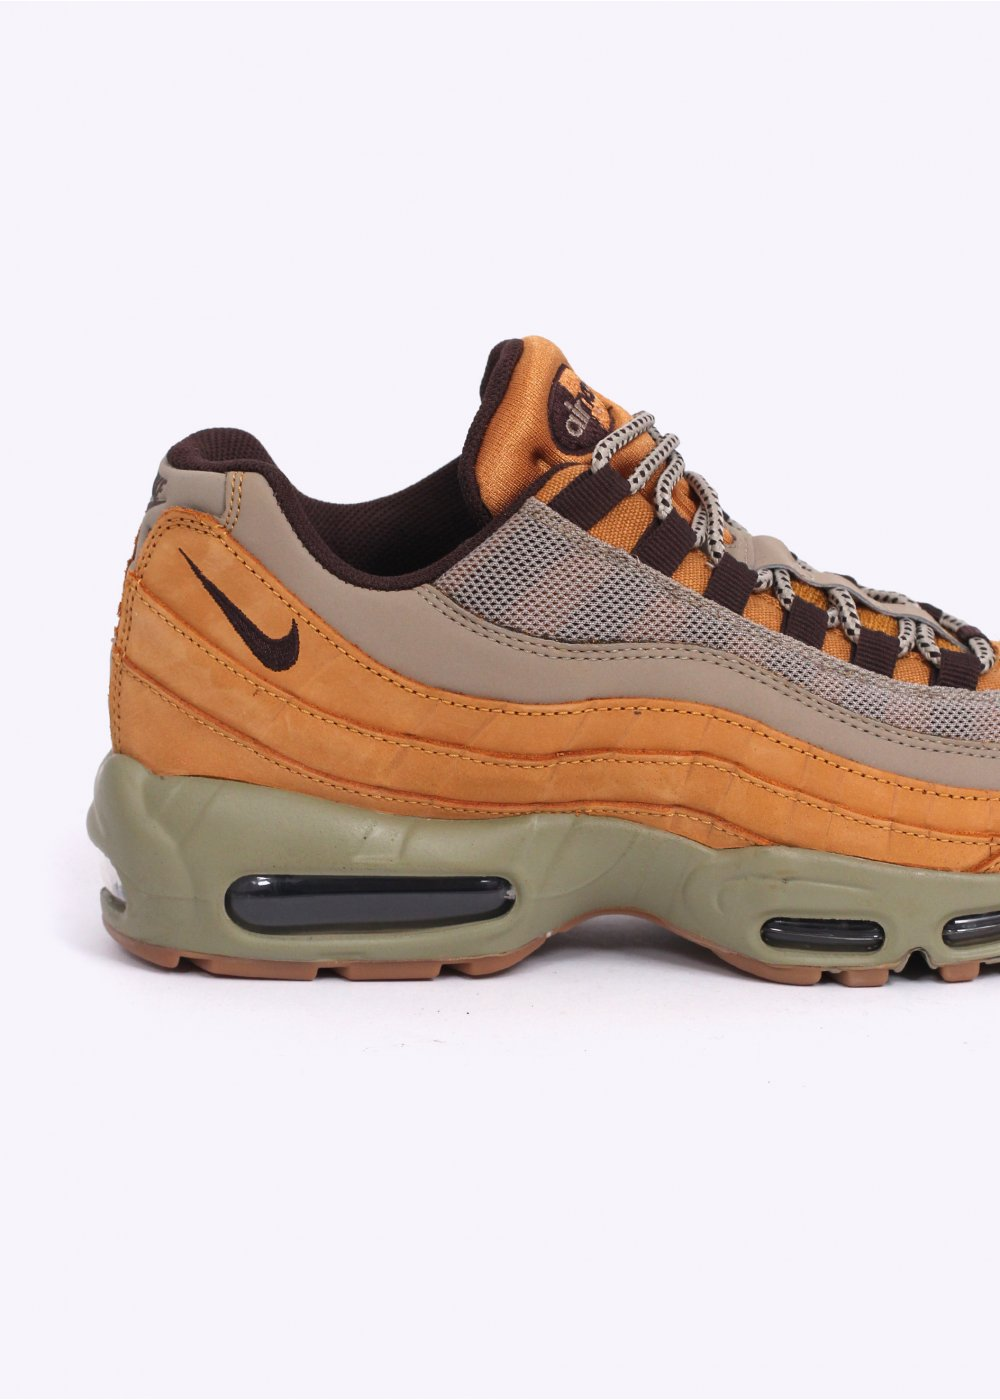 authentic factory price half off Nike Footwear Air Max 95 Premium 'Wheat' Trainers - Bronze / Baroque Brown  / Bamboo